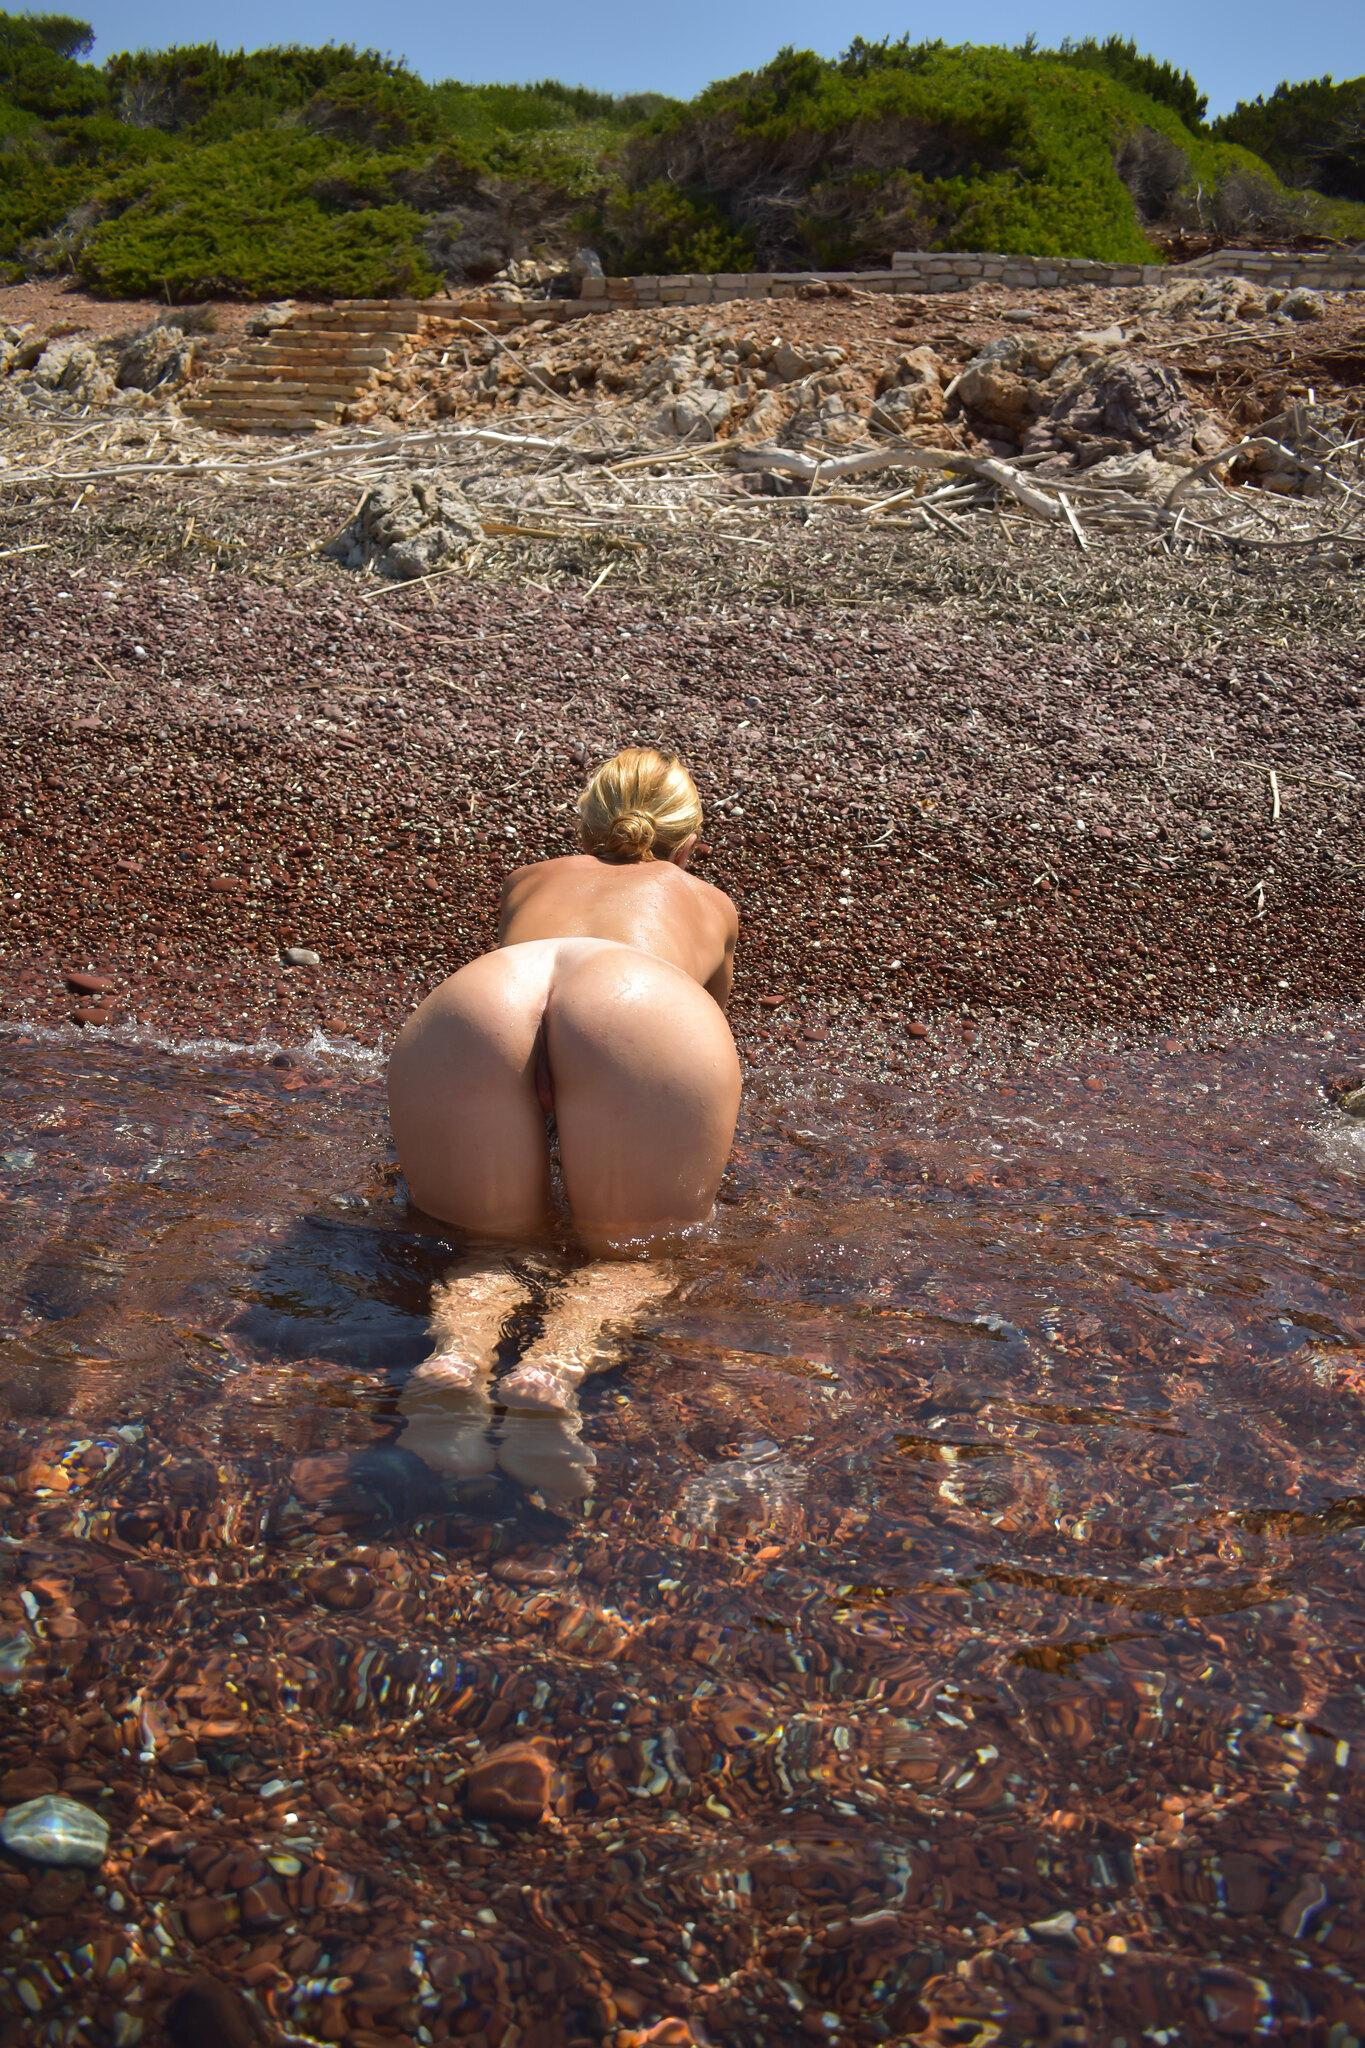 Curvy MILF likes showing off her hot big buttocks on the beach. Naughty mature nudist demonstrating juicy ass on the beach